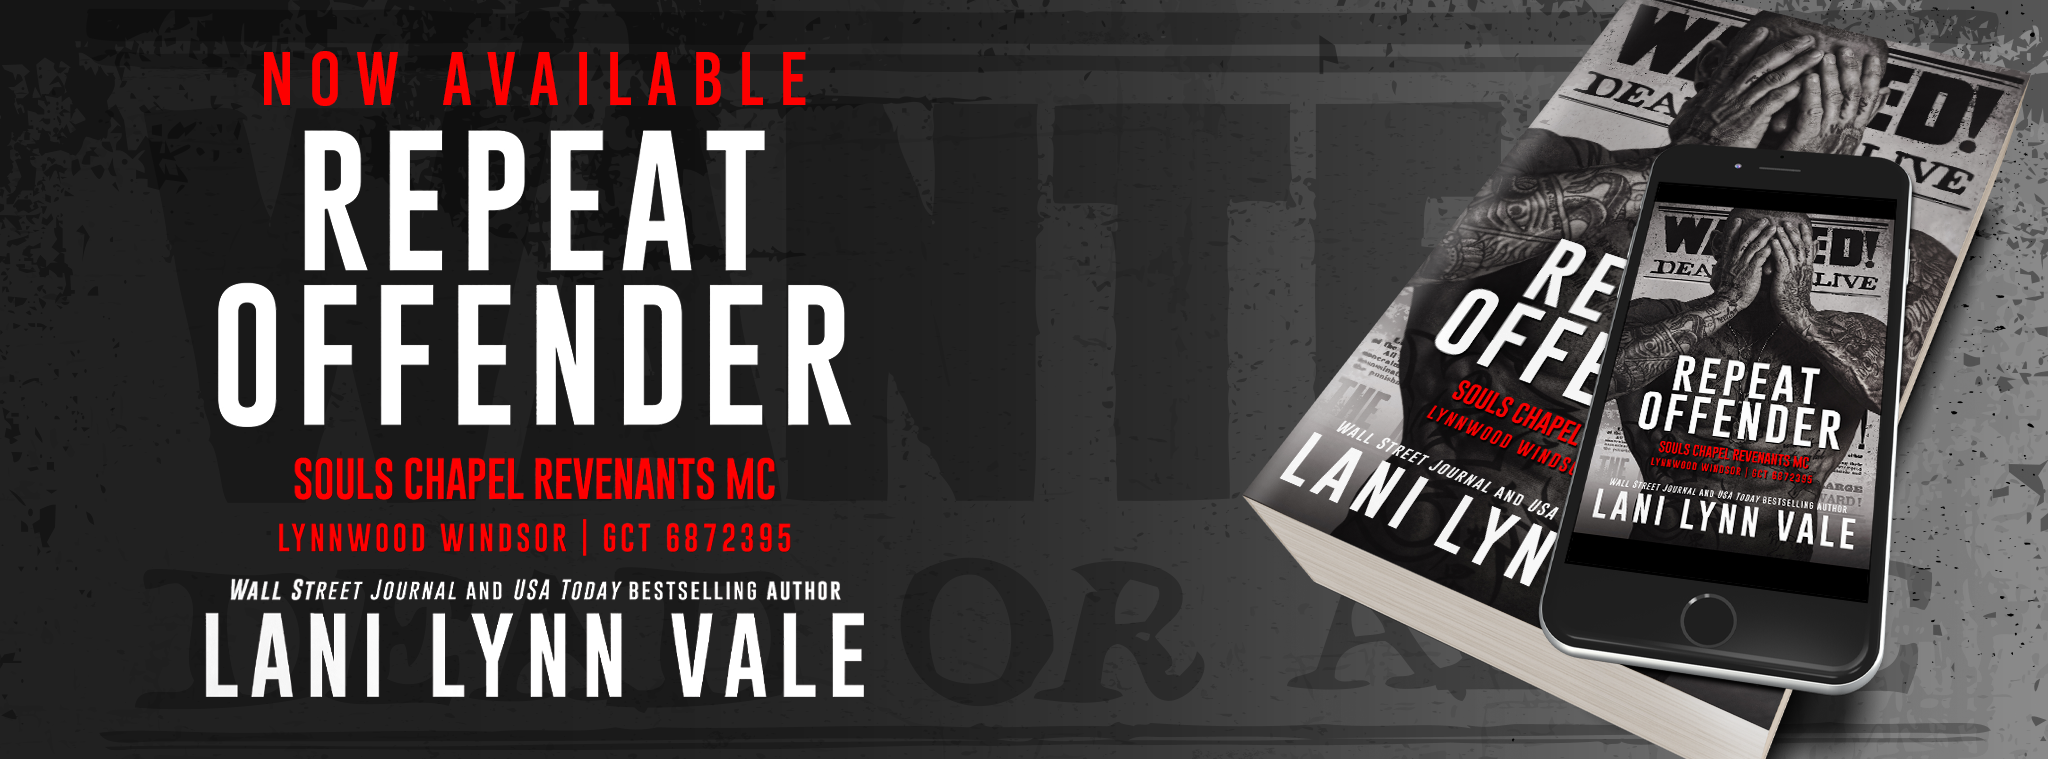 Repeat Offender by Lani Lynn Vale